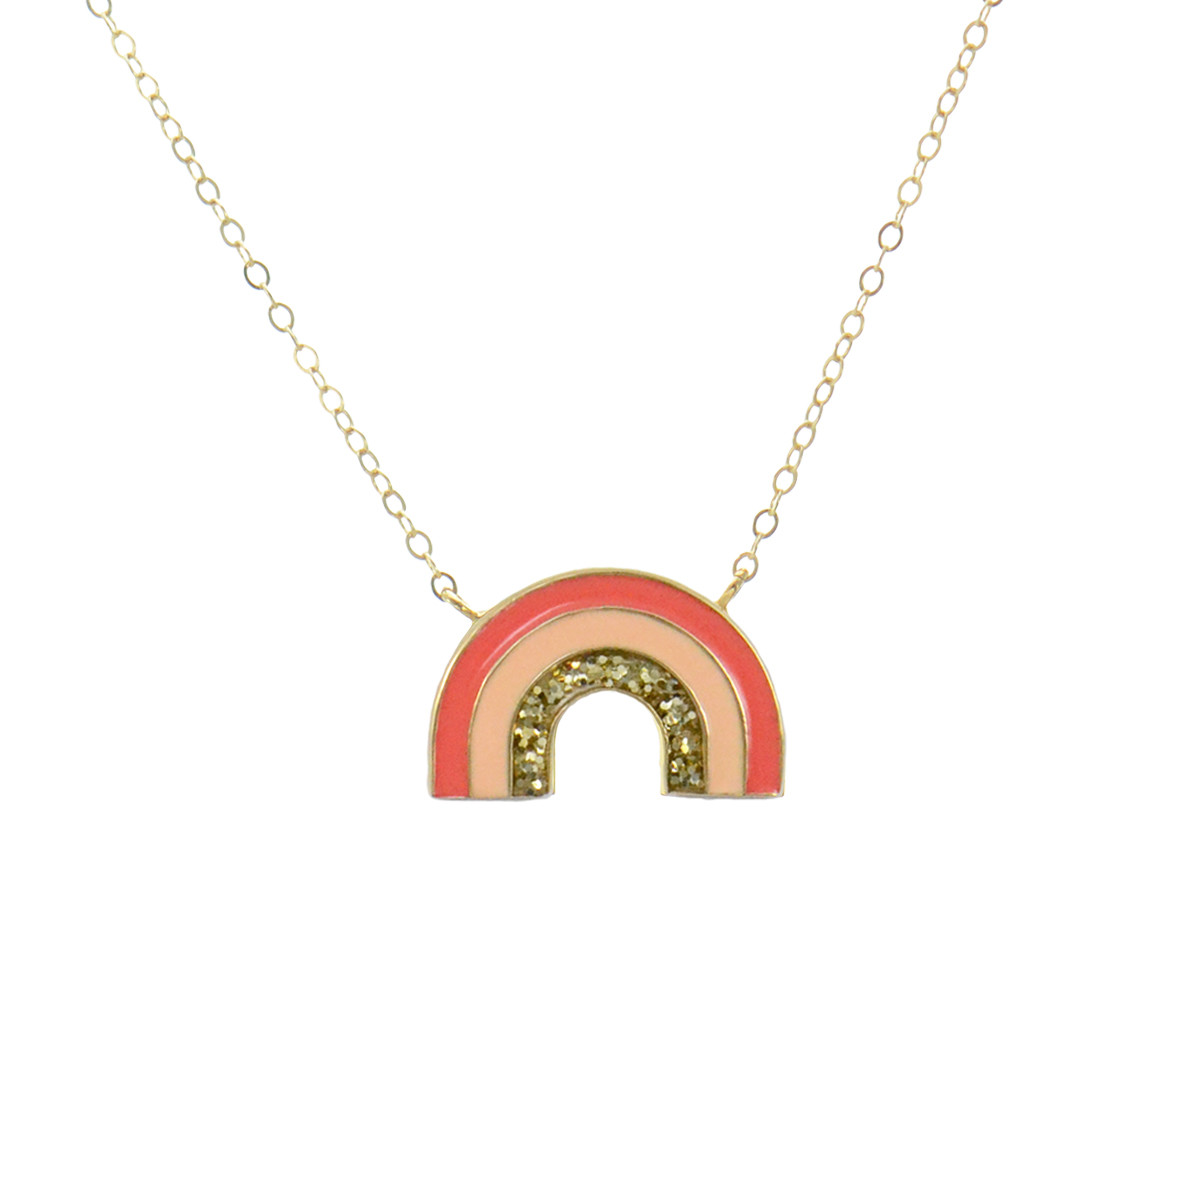 necklace rainbow bar wg yg products collection mini ef